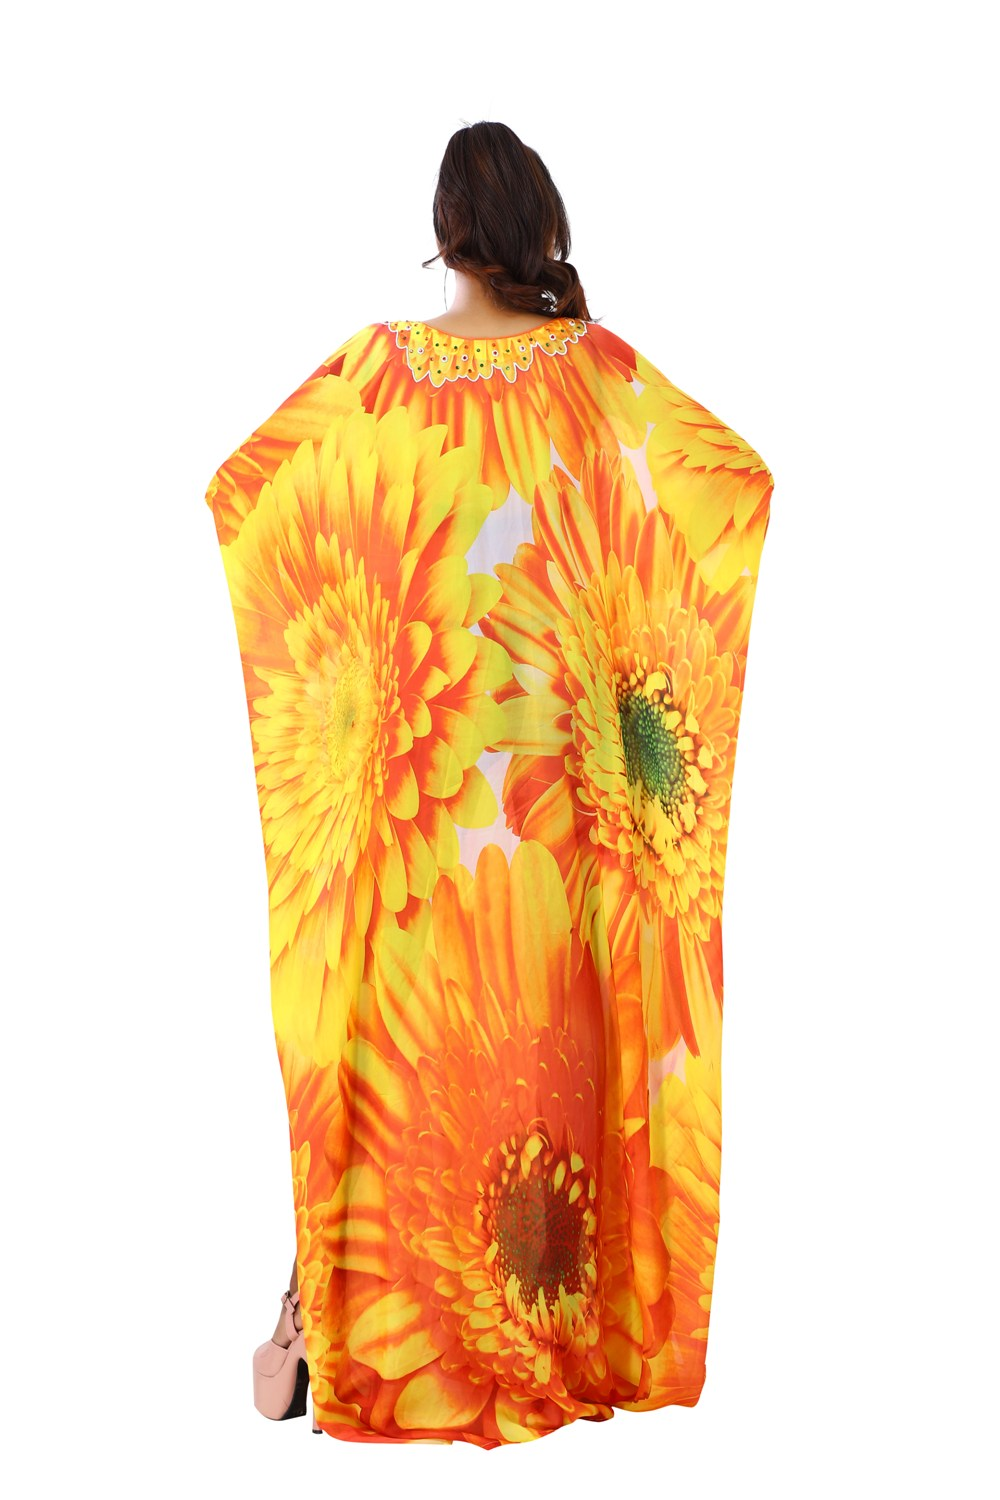 Floral Beauty in an Abstract Patterned Long Silk Kaftan glorified with Sunflower Print Luxe beach kaftan - Silk kaftan